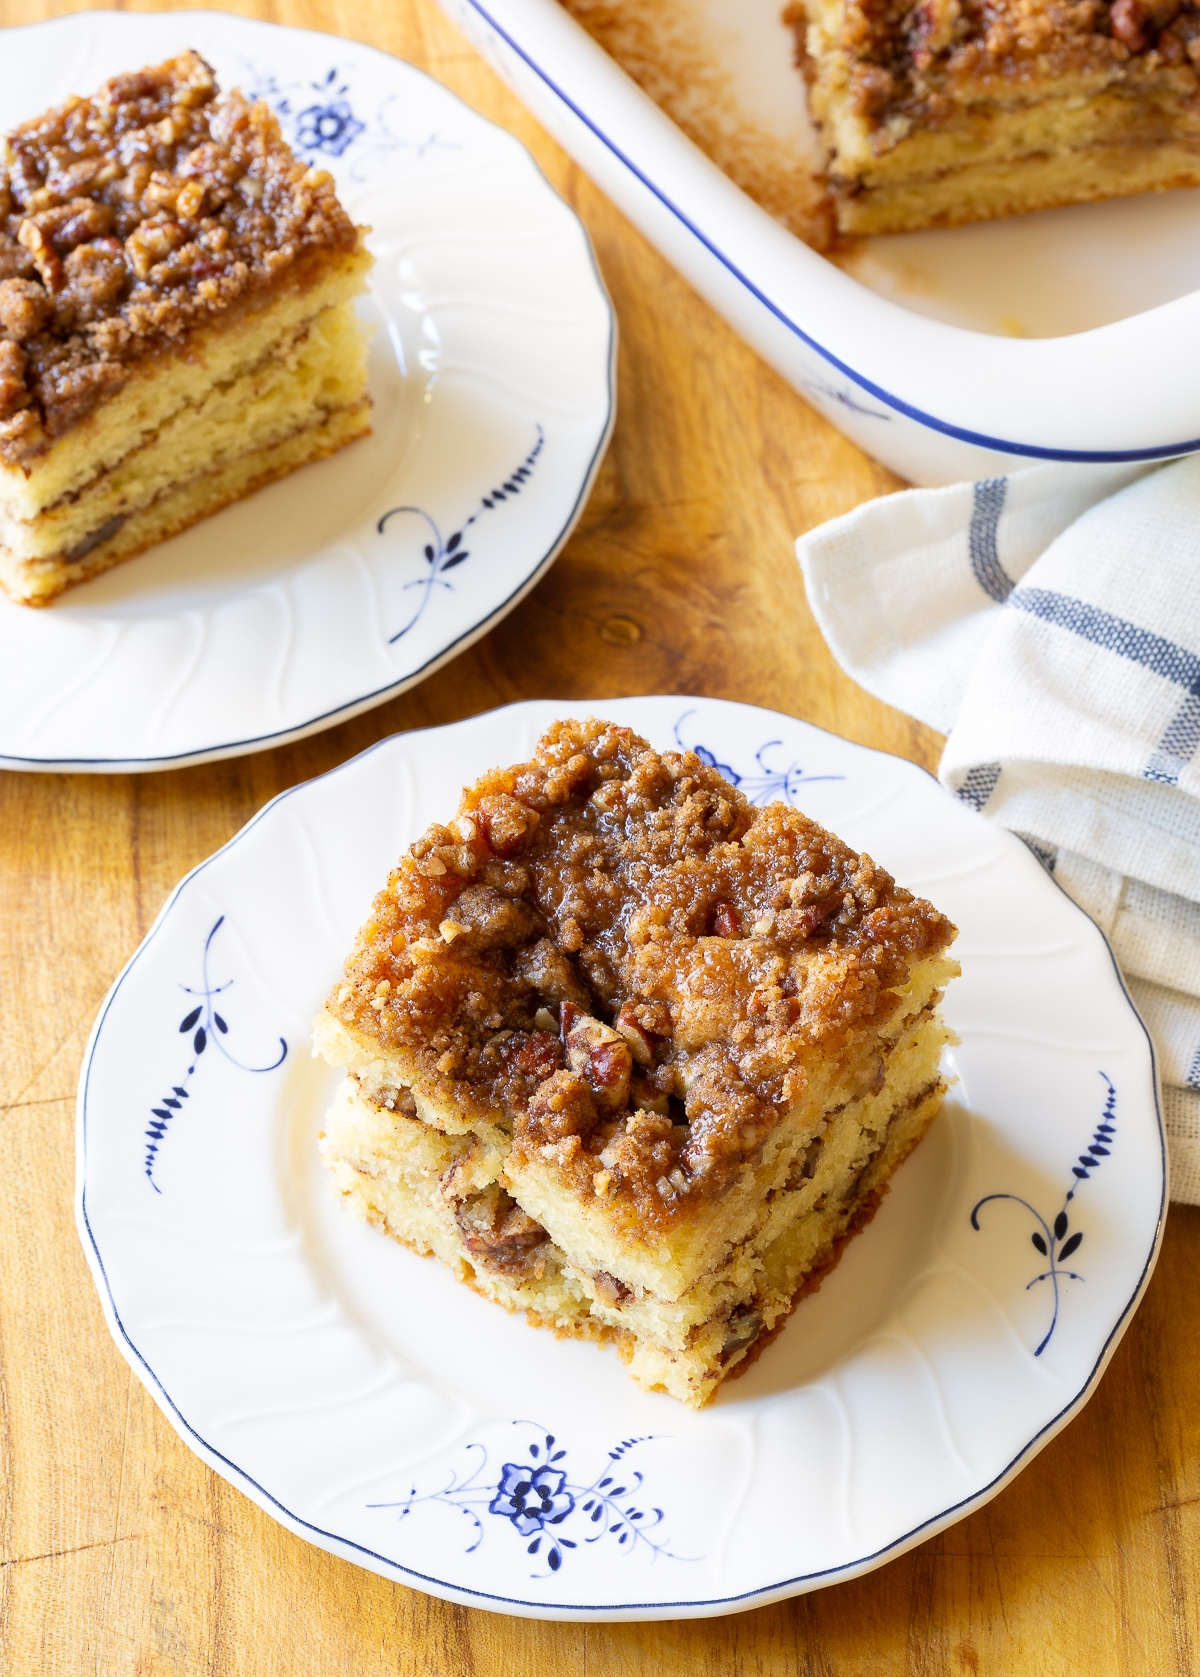 Best Coffee Cake Recipe #ASpicyPerspective #coffee #cake #snack #breakfast #holidays